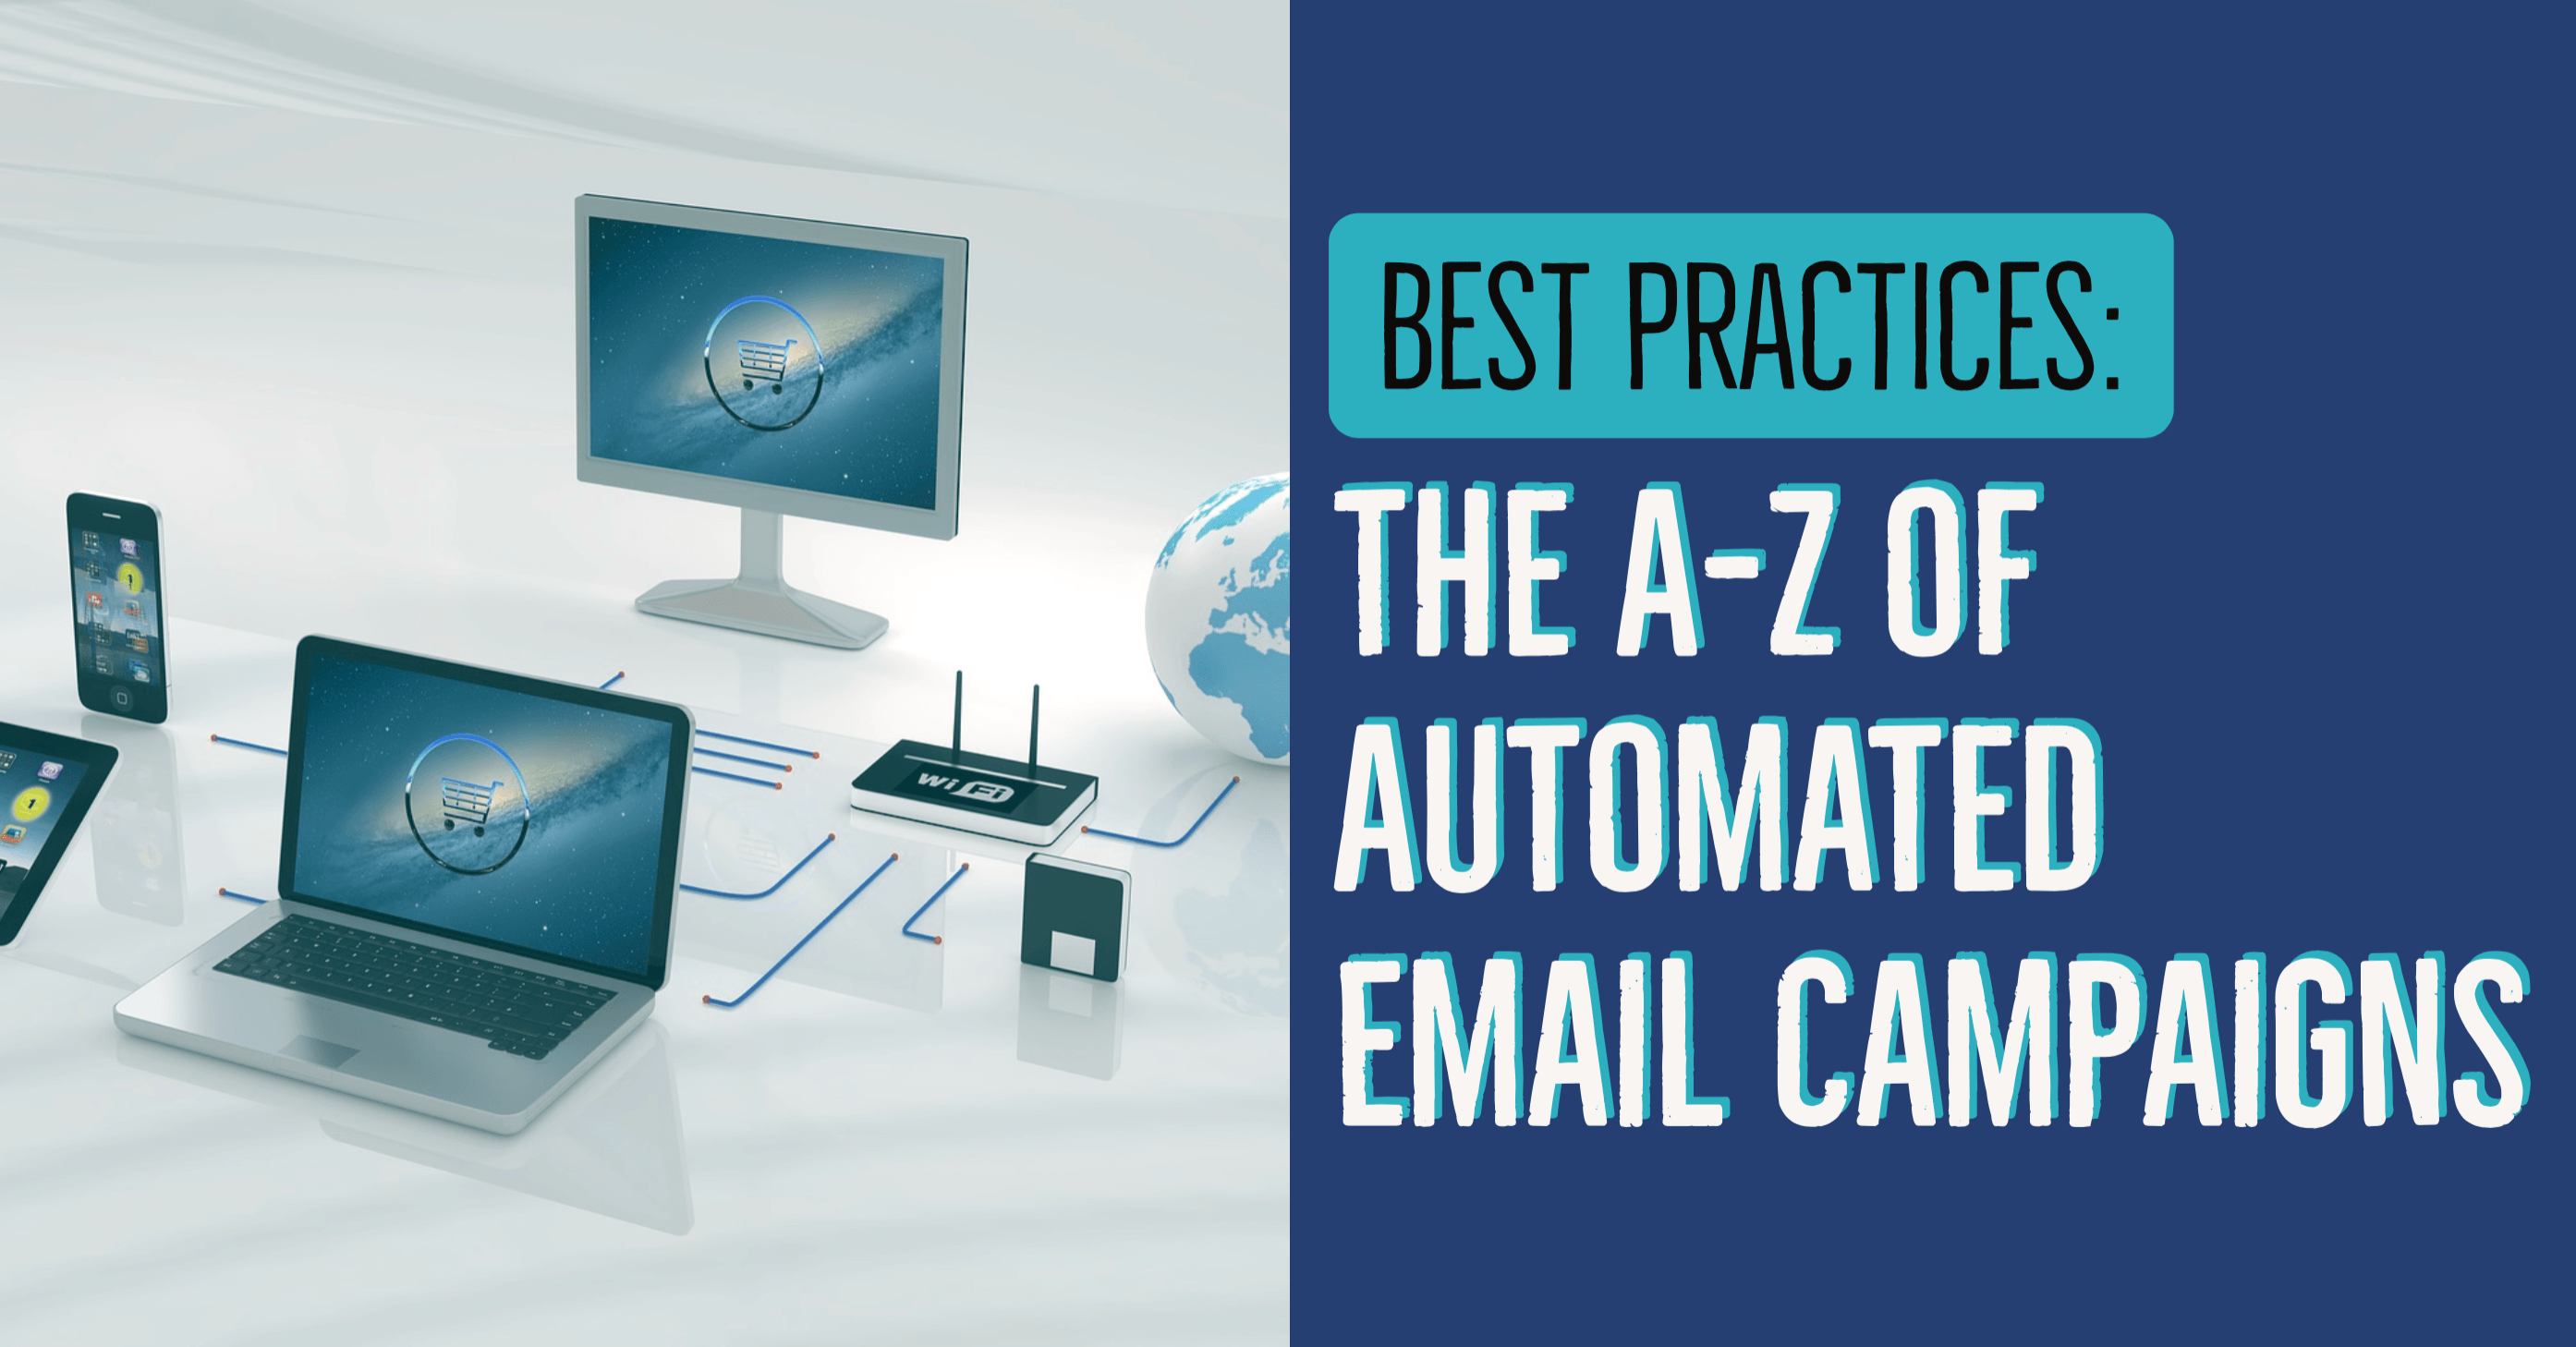 The A-Z of Automated Email Campaigns 67